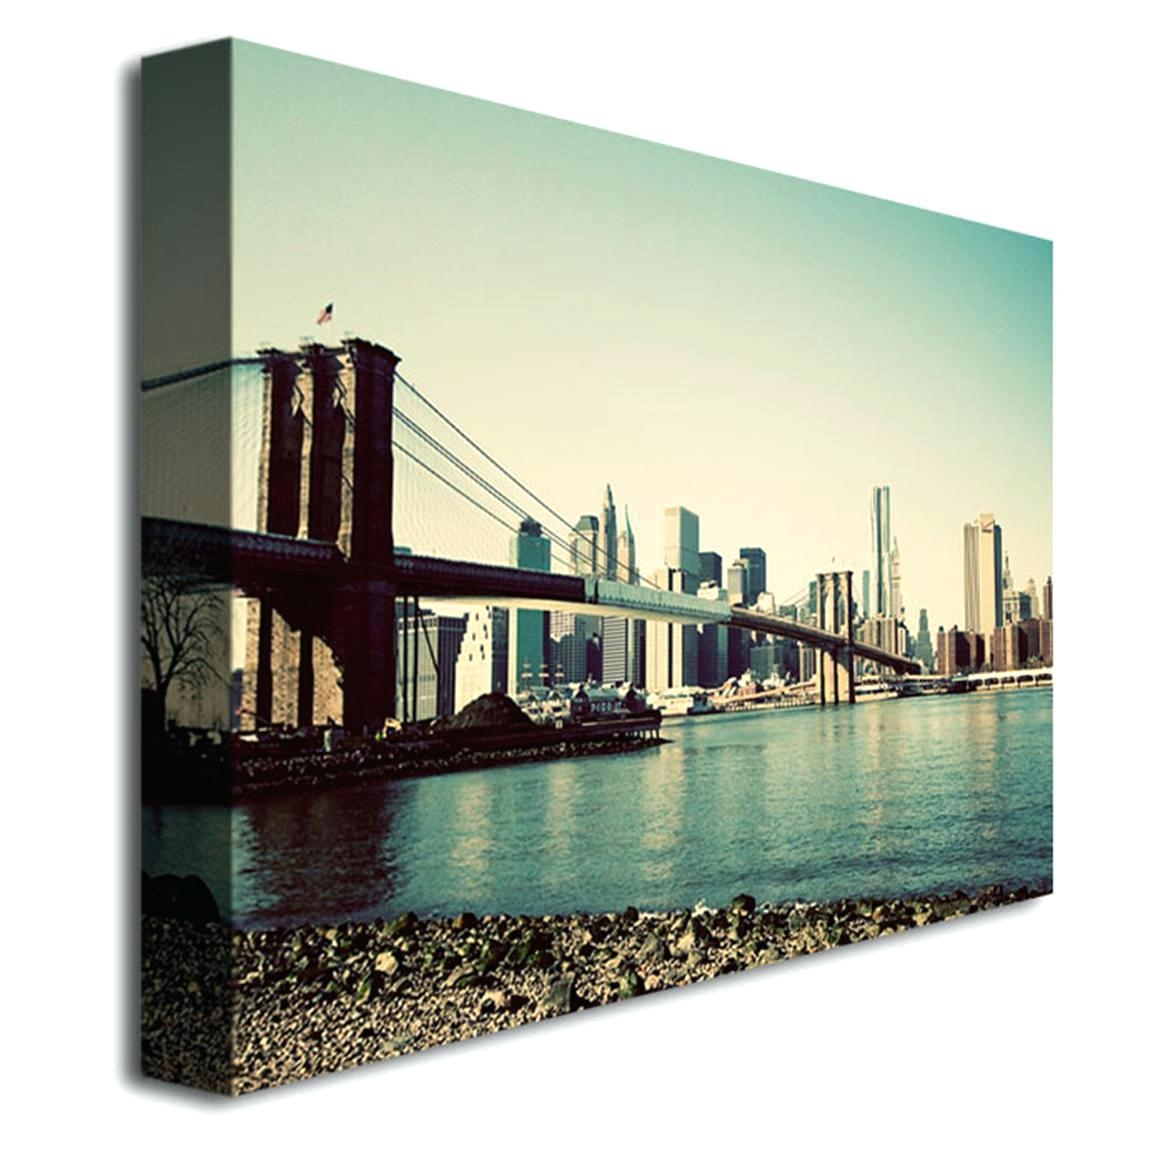 Wall Ideas : Brooklyn Bridge Glass Wall Art Zoom Ikea Brooklyn Pertaining To Ikea Brooklyn Bridge Wall Art (Image 18 of 20)